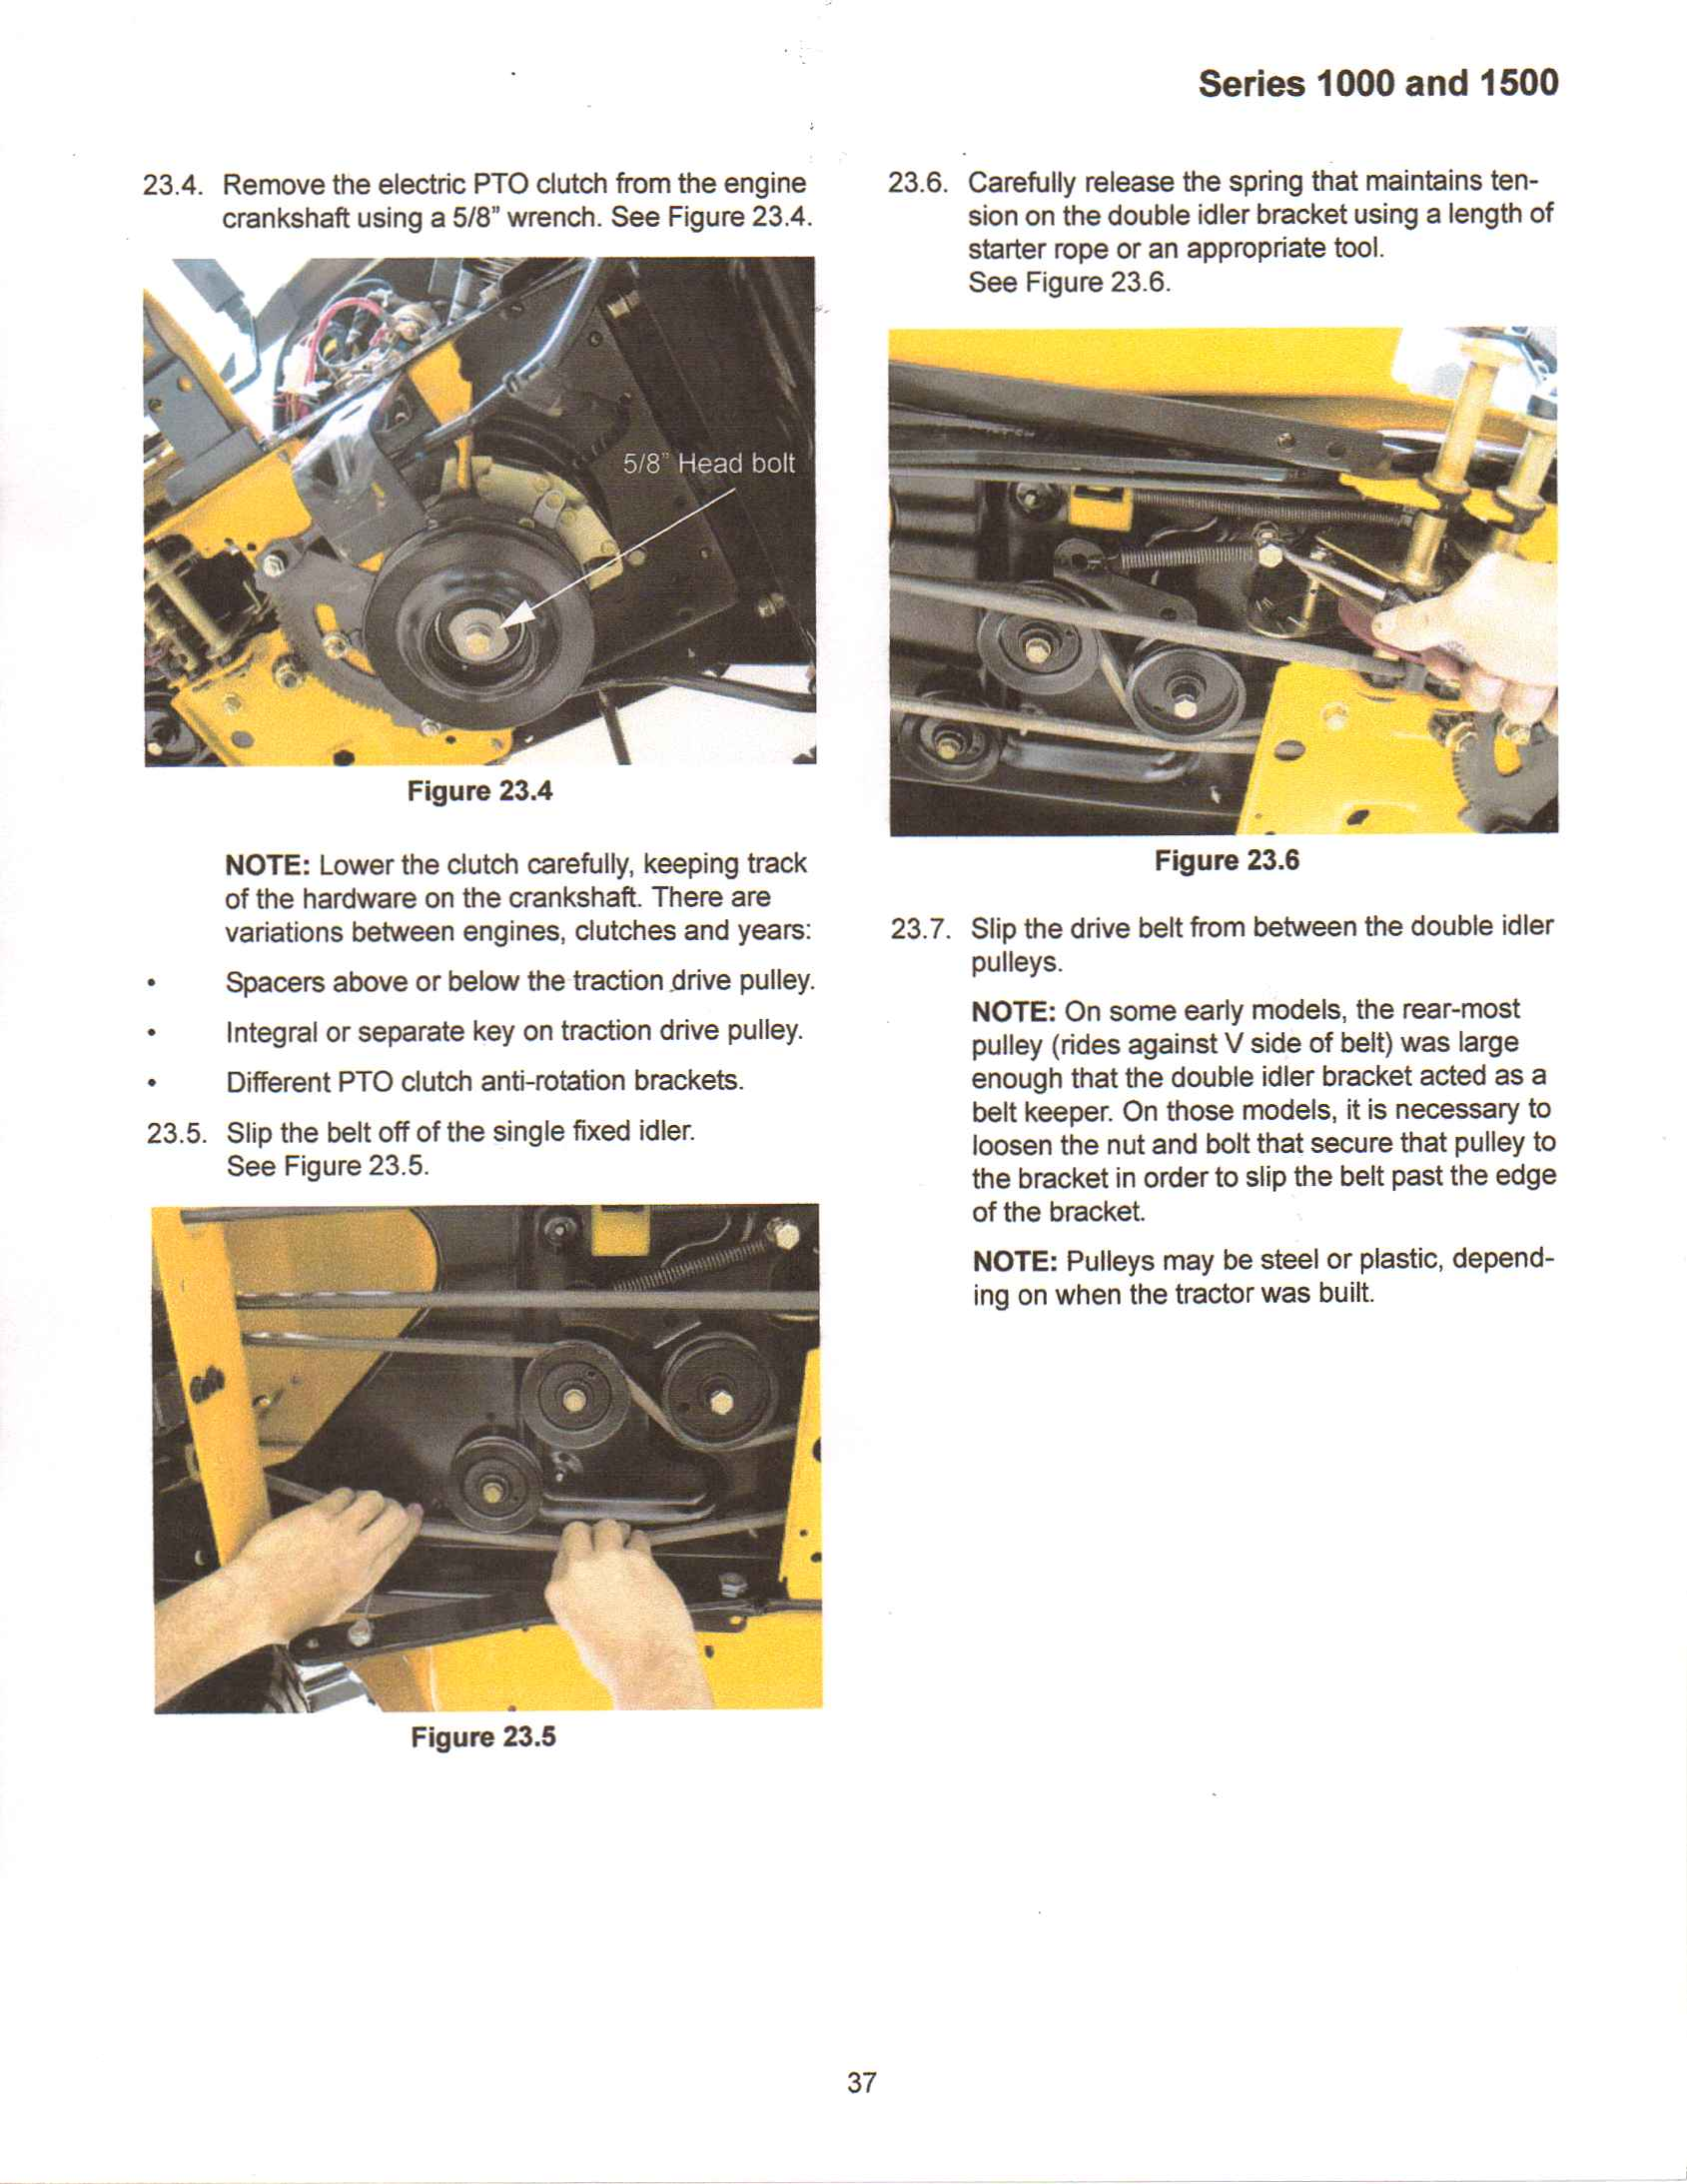 Why Does The Electric Clutch Disengage After Running Only A Few Cub Cadet Lt1045 Wiring Diagram Full Size Image